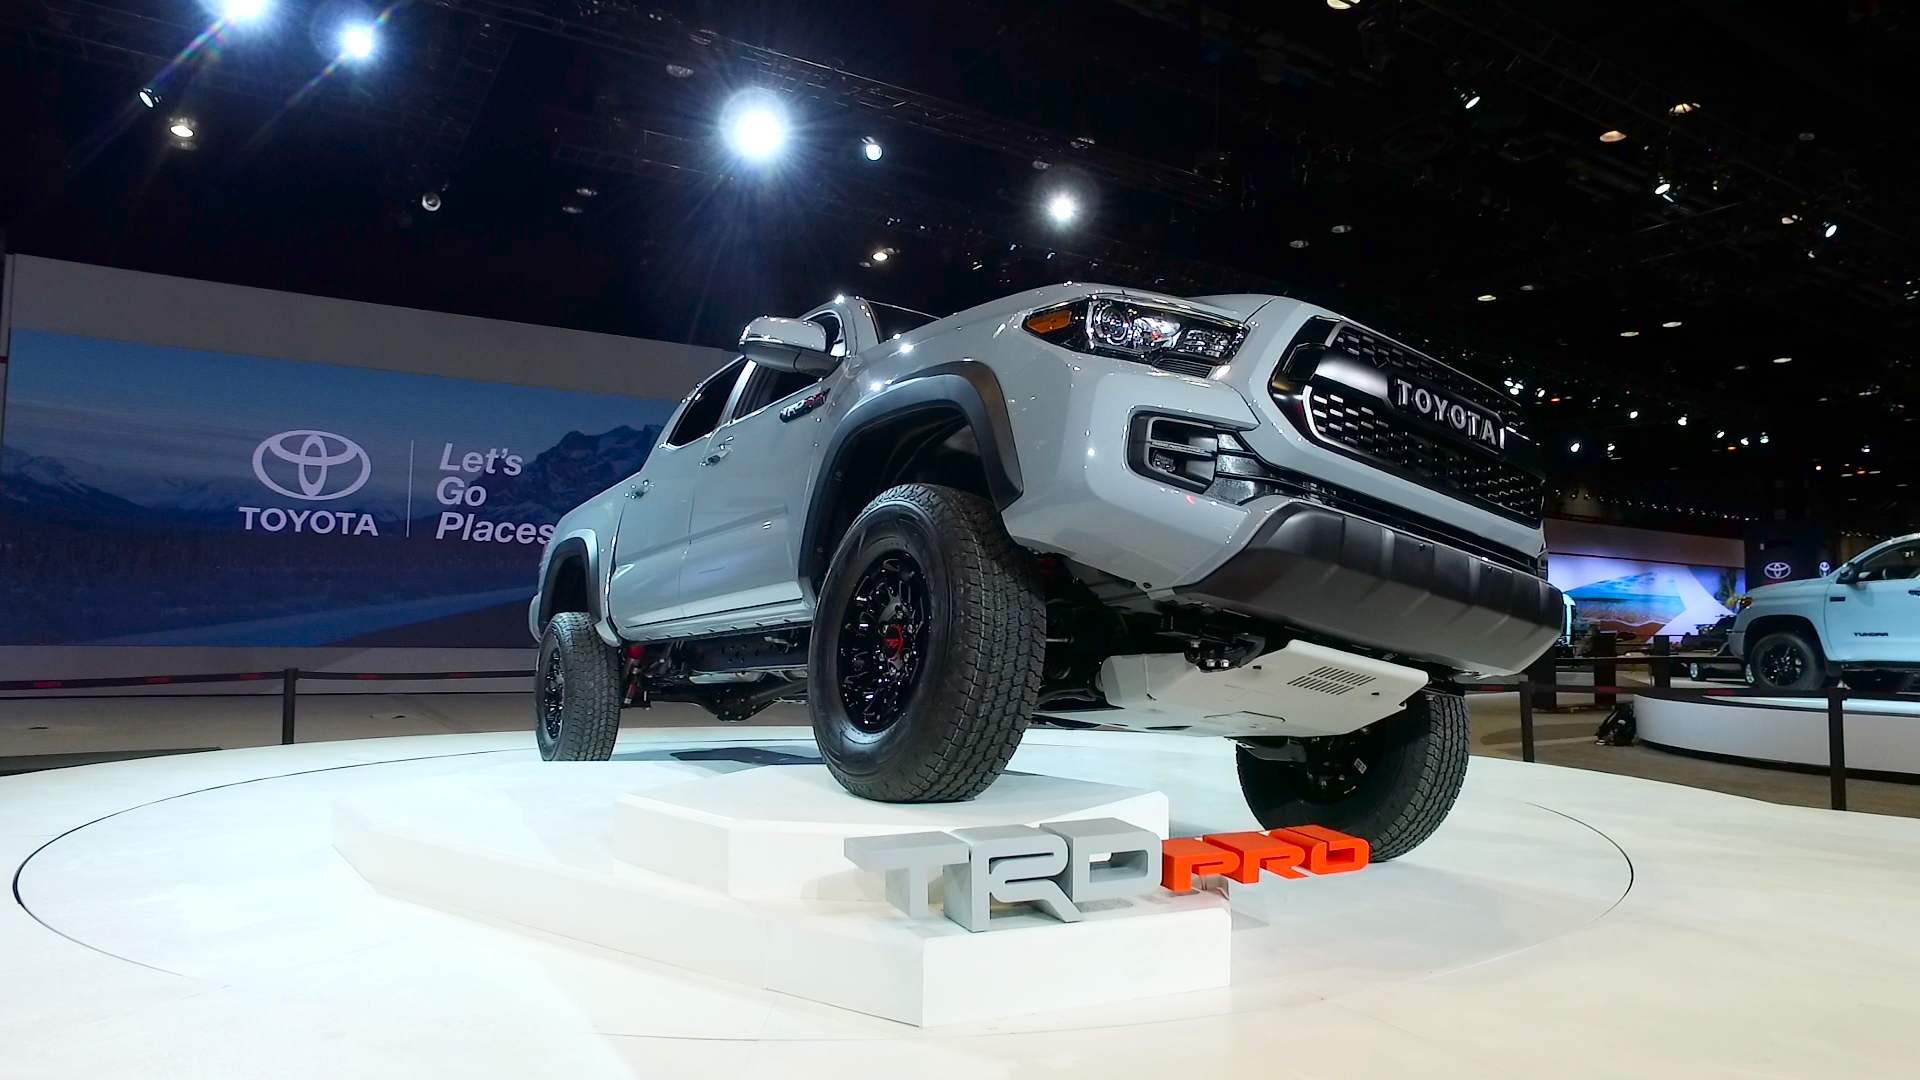 Video: Toyota Tacoma TRD Pro is ready to get down and dirty off-road